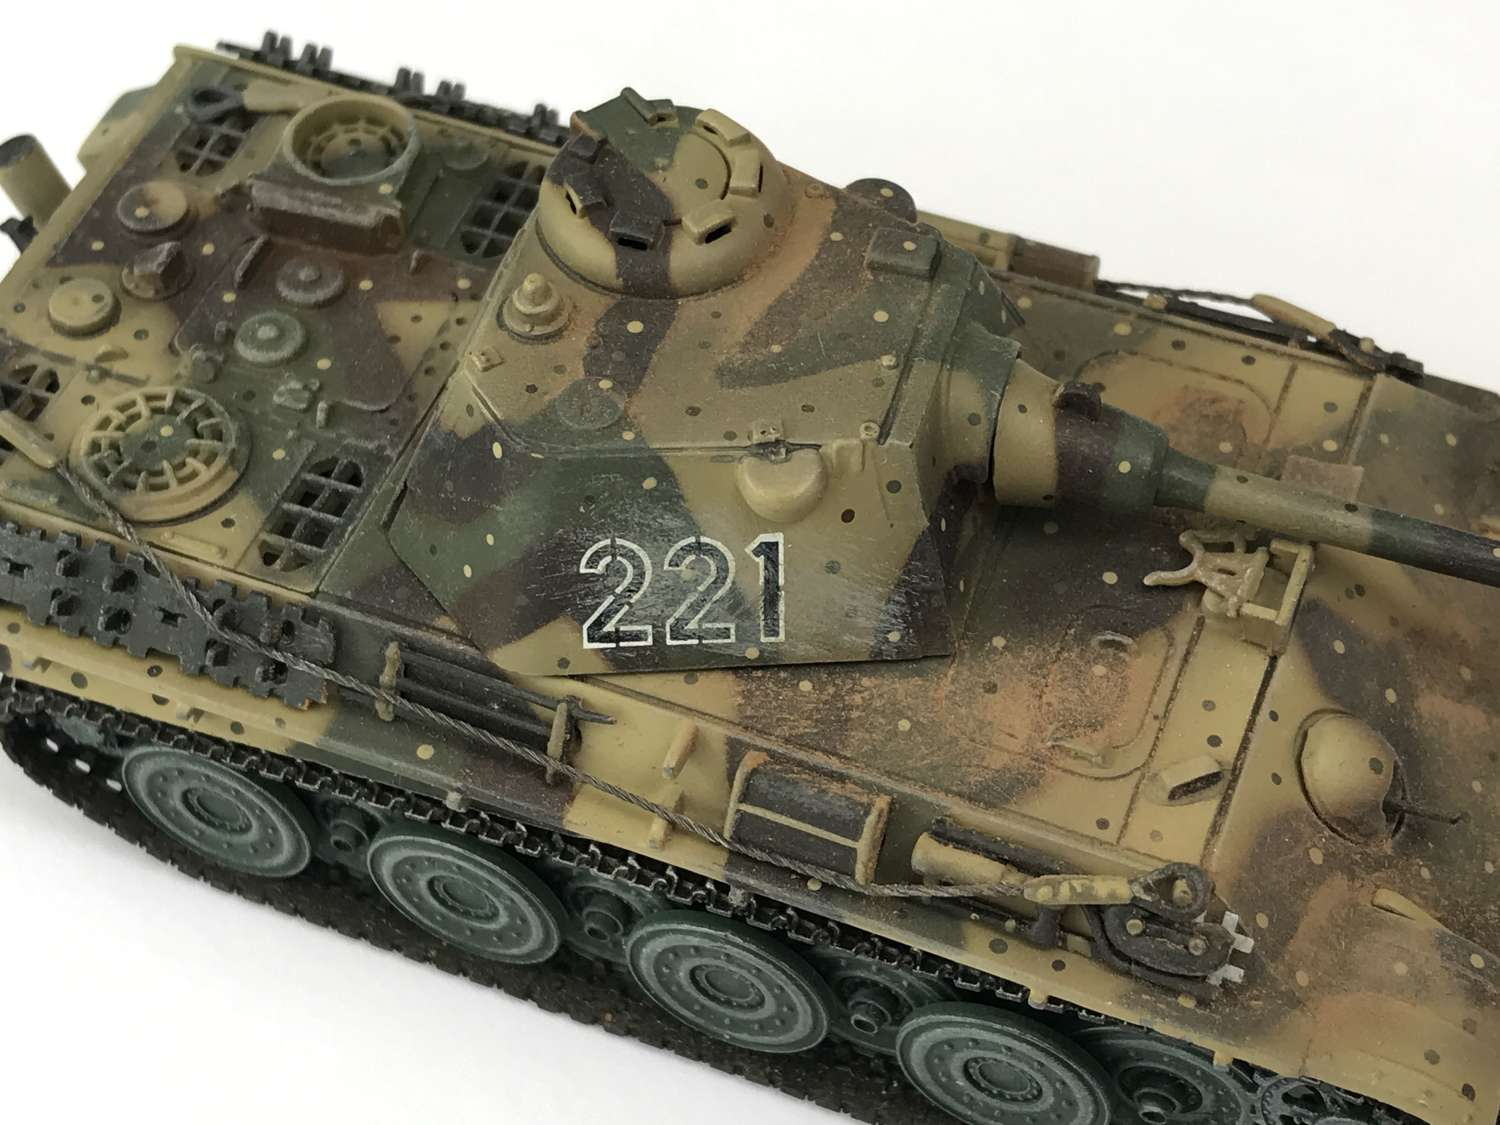 Late War Panther tank  model in 1/72 scale